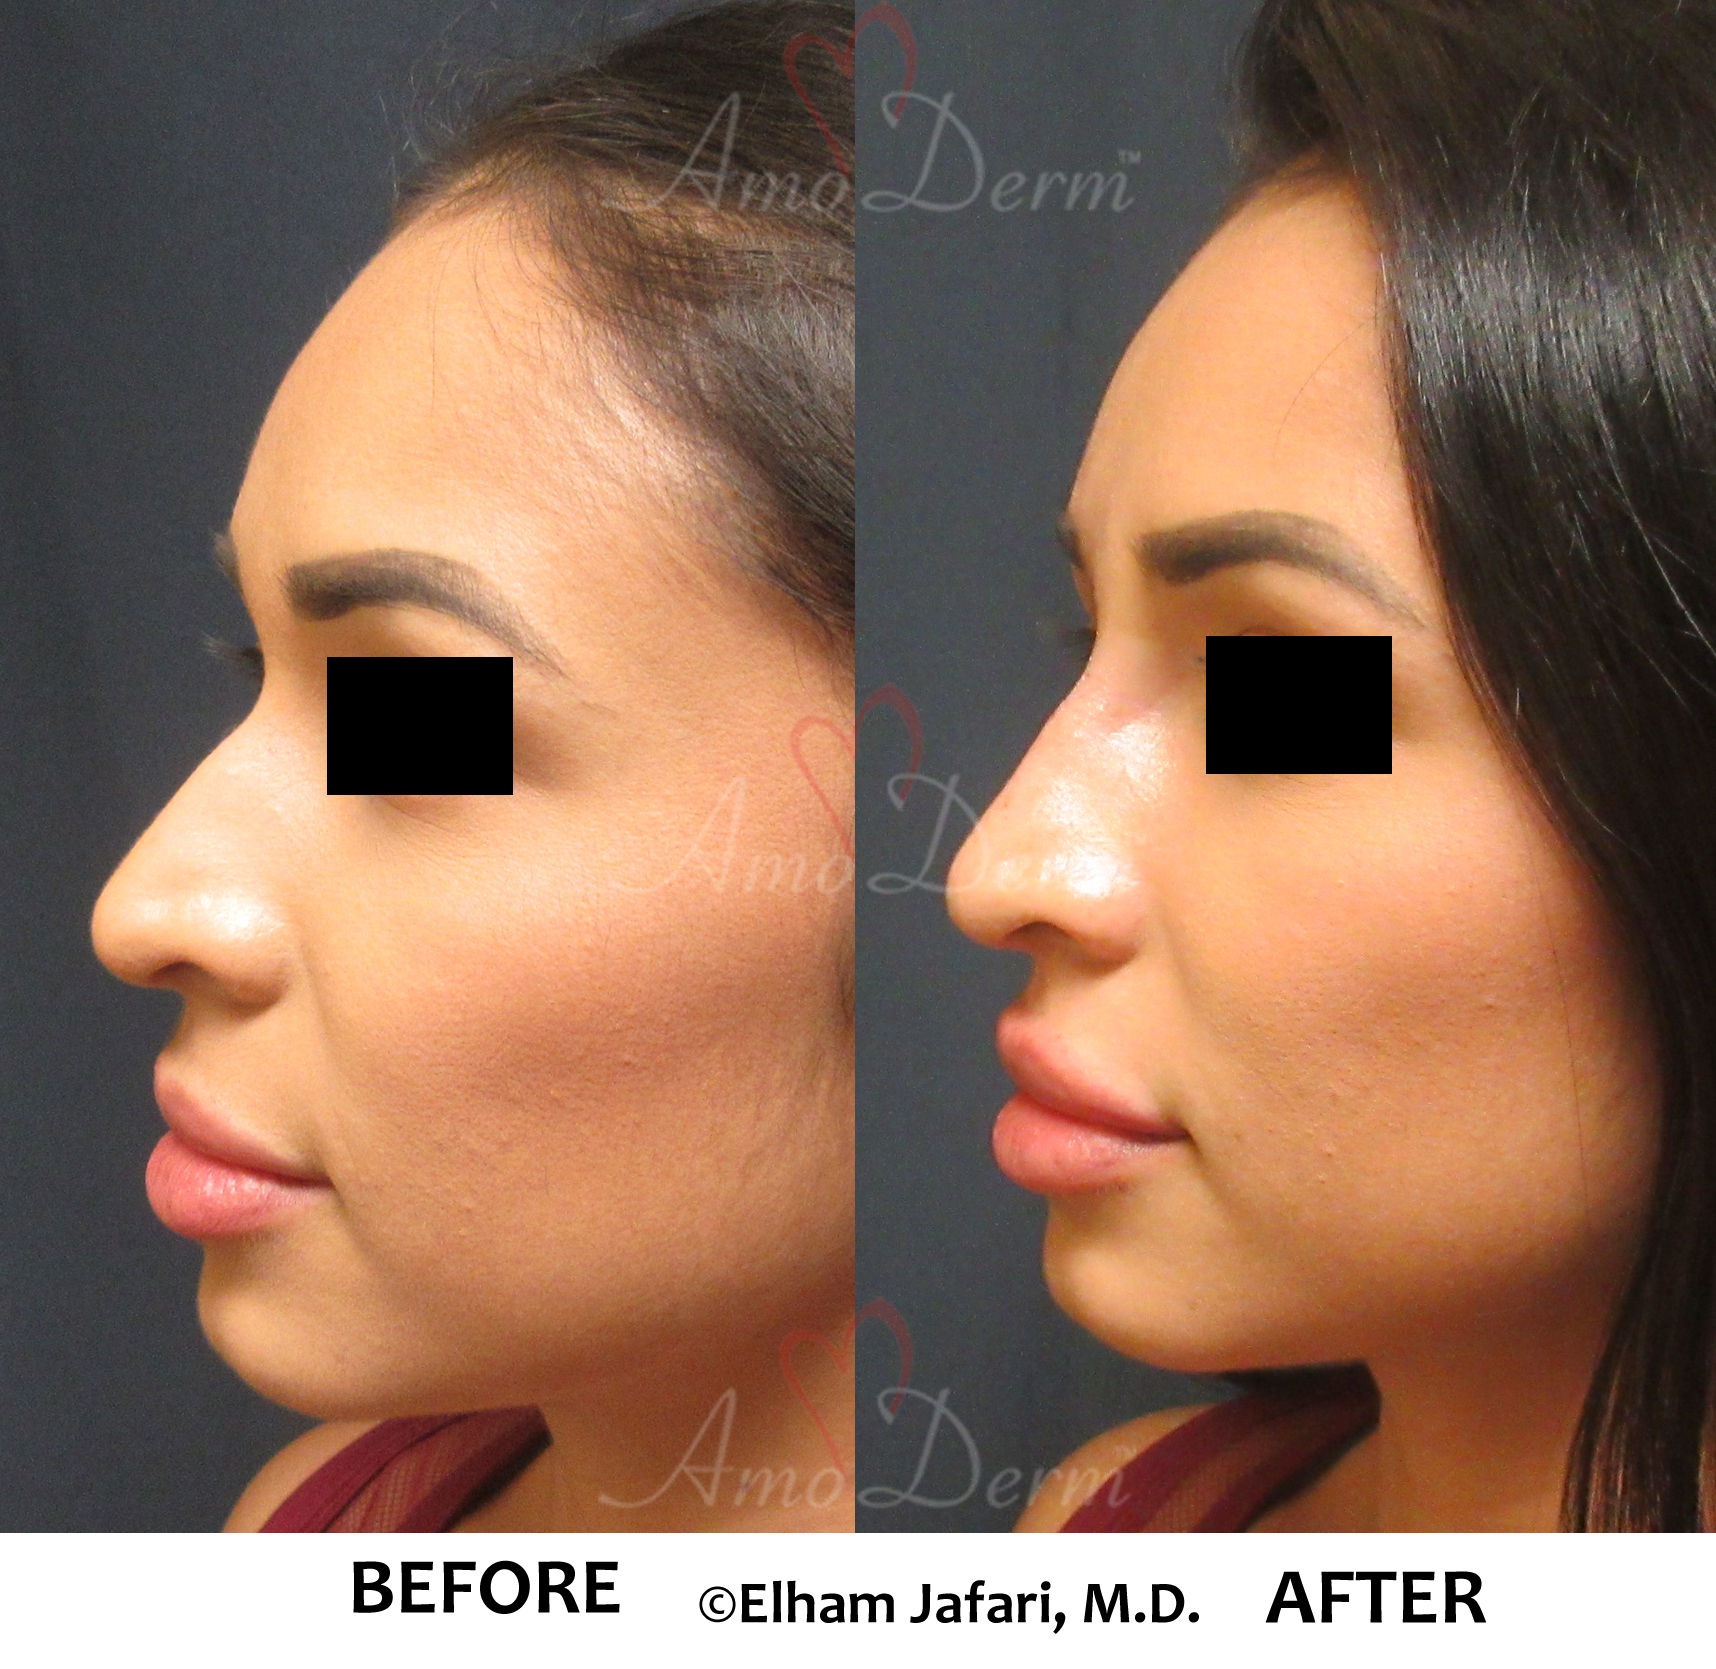 nonsurgical nose job - Amoderm : Before & After Gallery